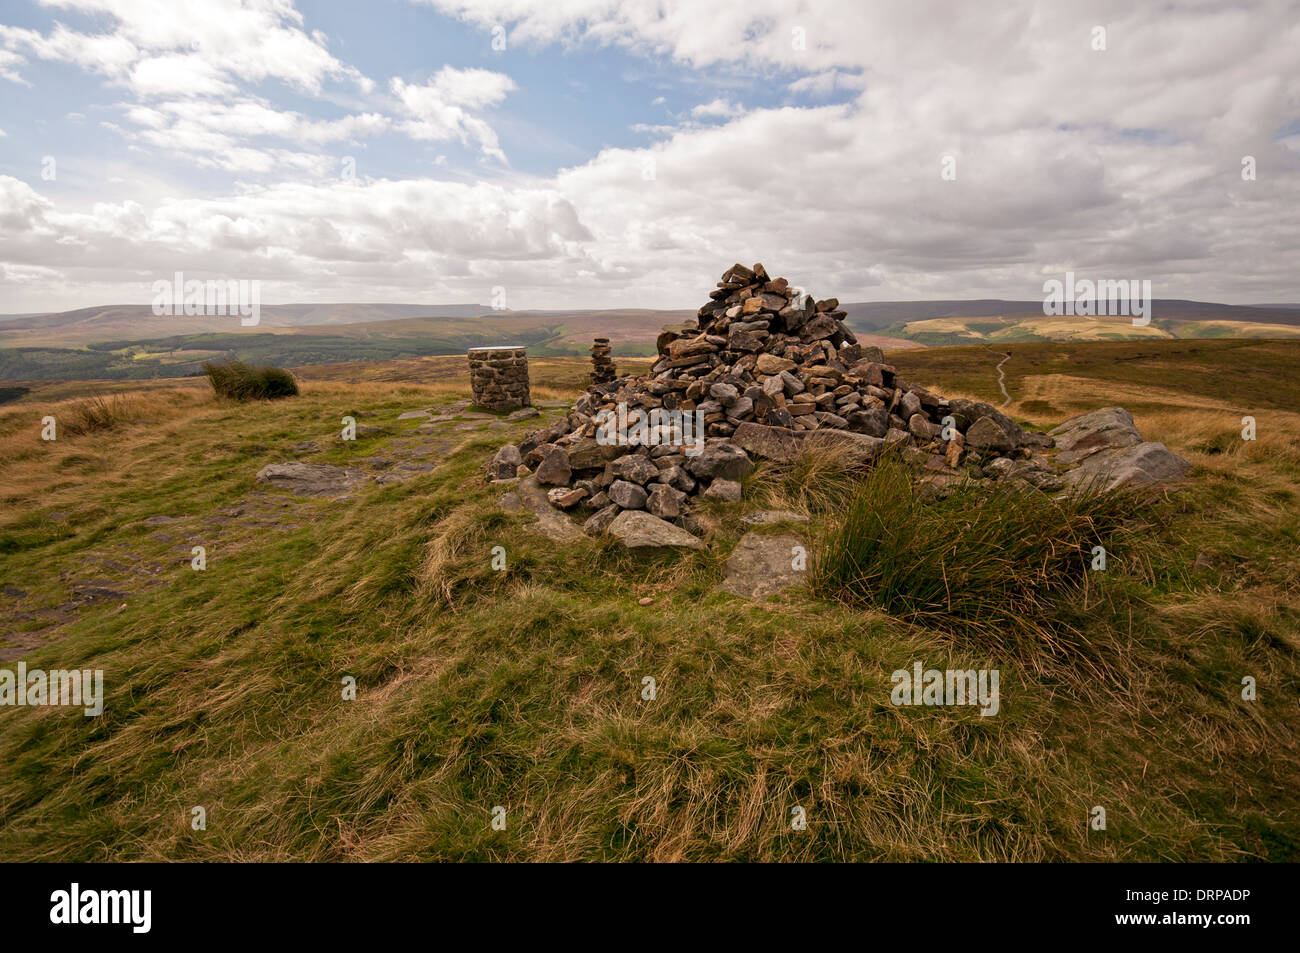 Lost Lad summit on the northern end of Derwent Edge in the Peak District National Park. - Stock Image